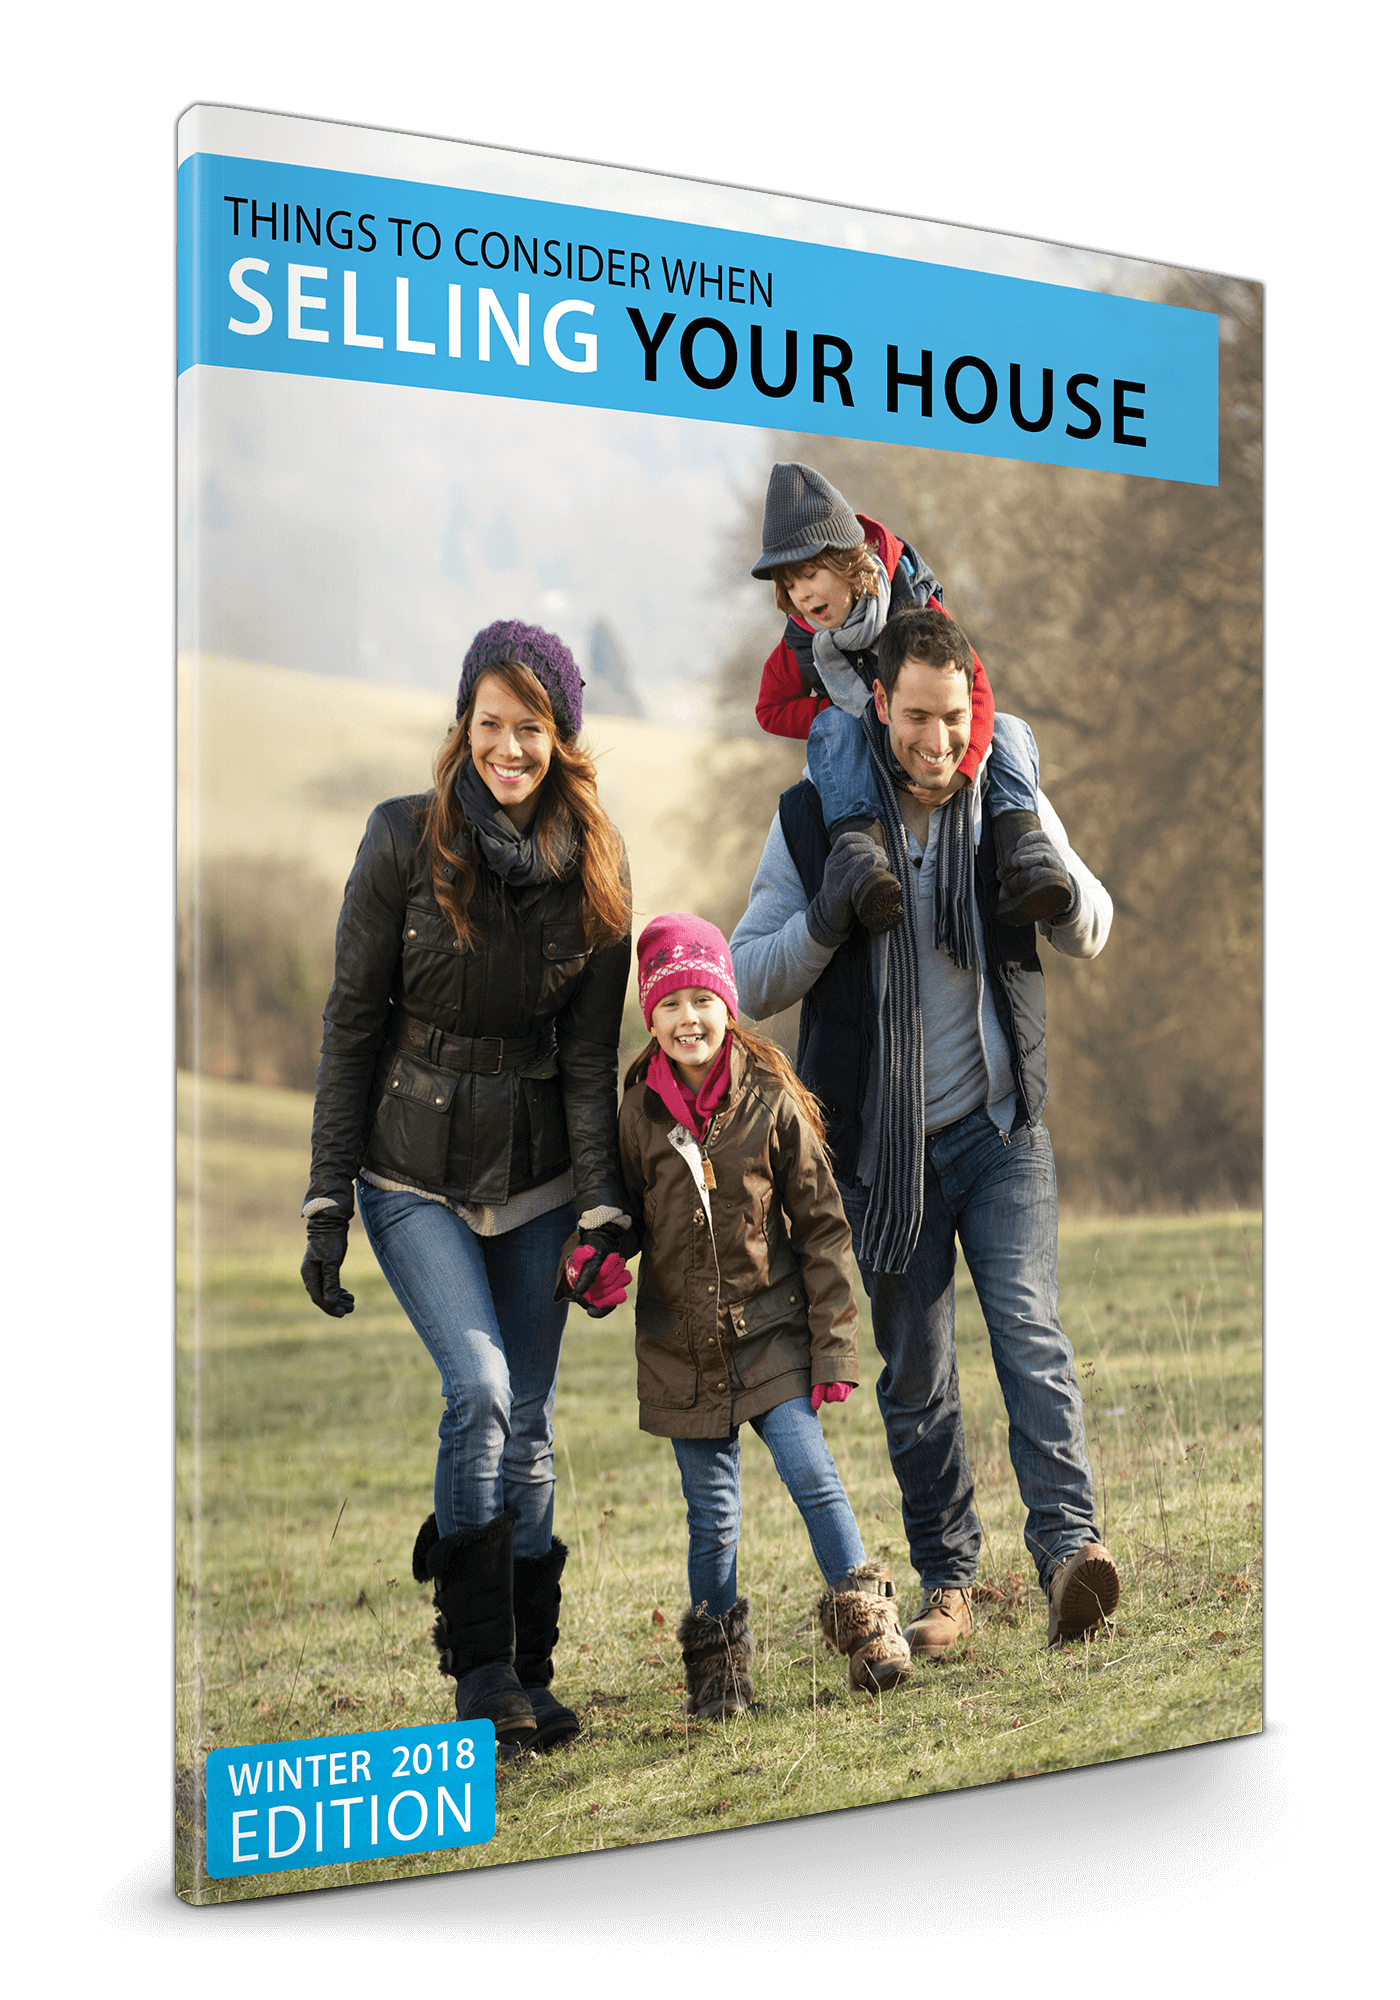 Home Seller Guide: Things To Consider Before Selling Your Home